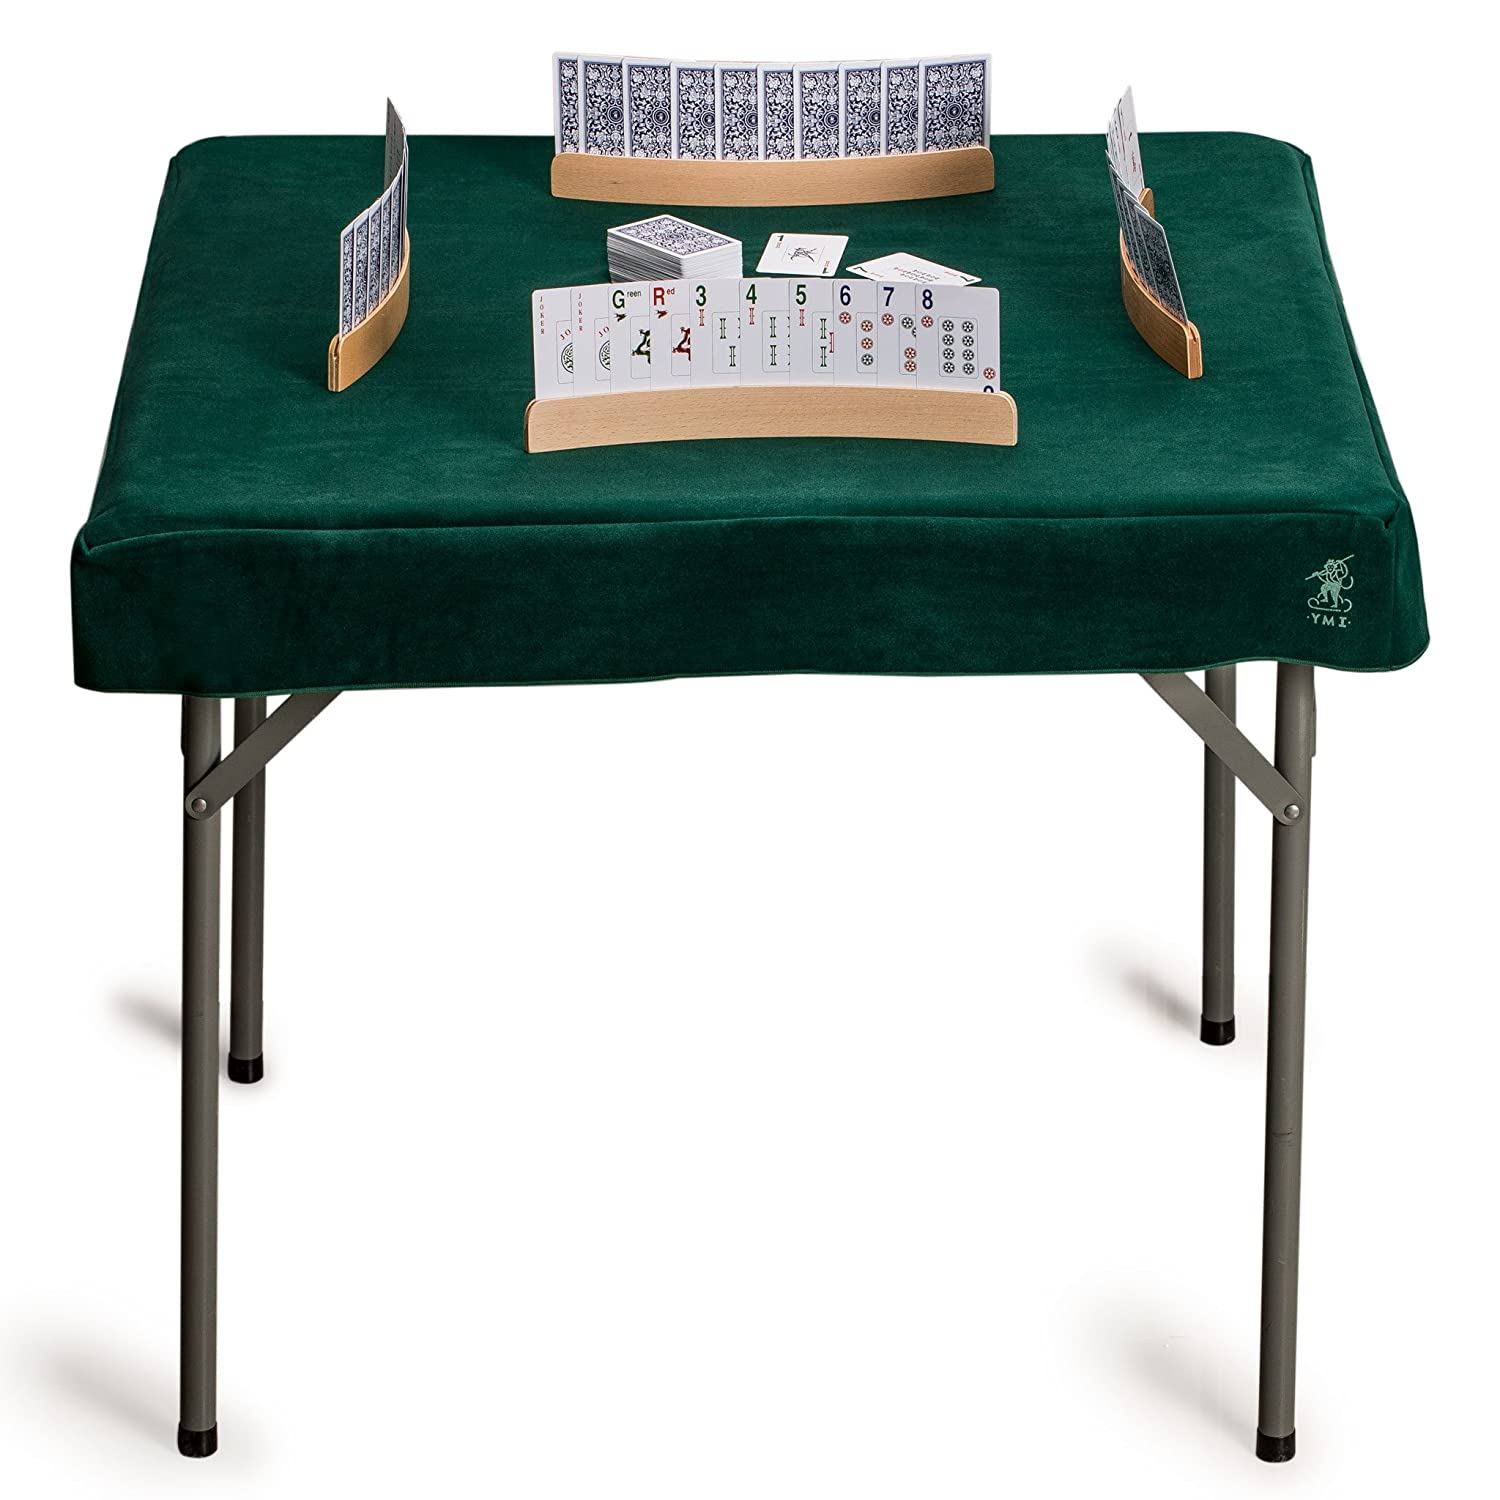 Mahjong Cards Yellow Mountain Imports Table Cover for Poker Board Games and Tile Games Professional Grade